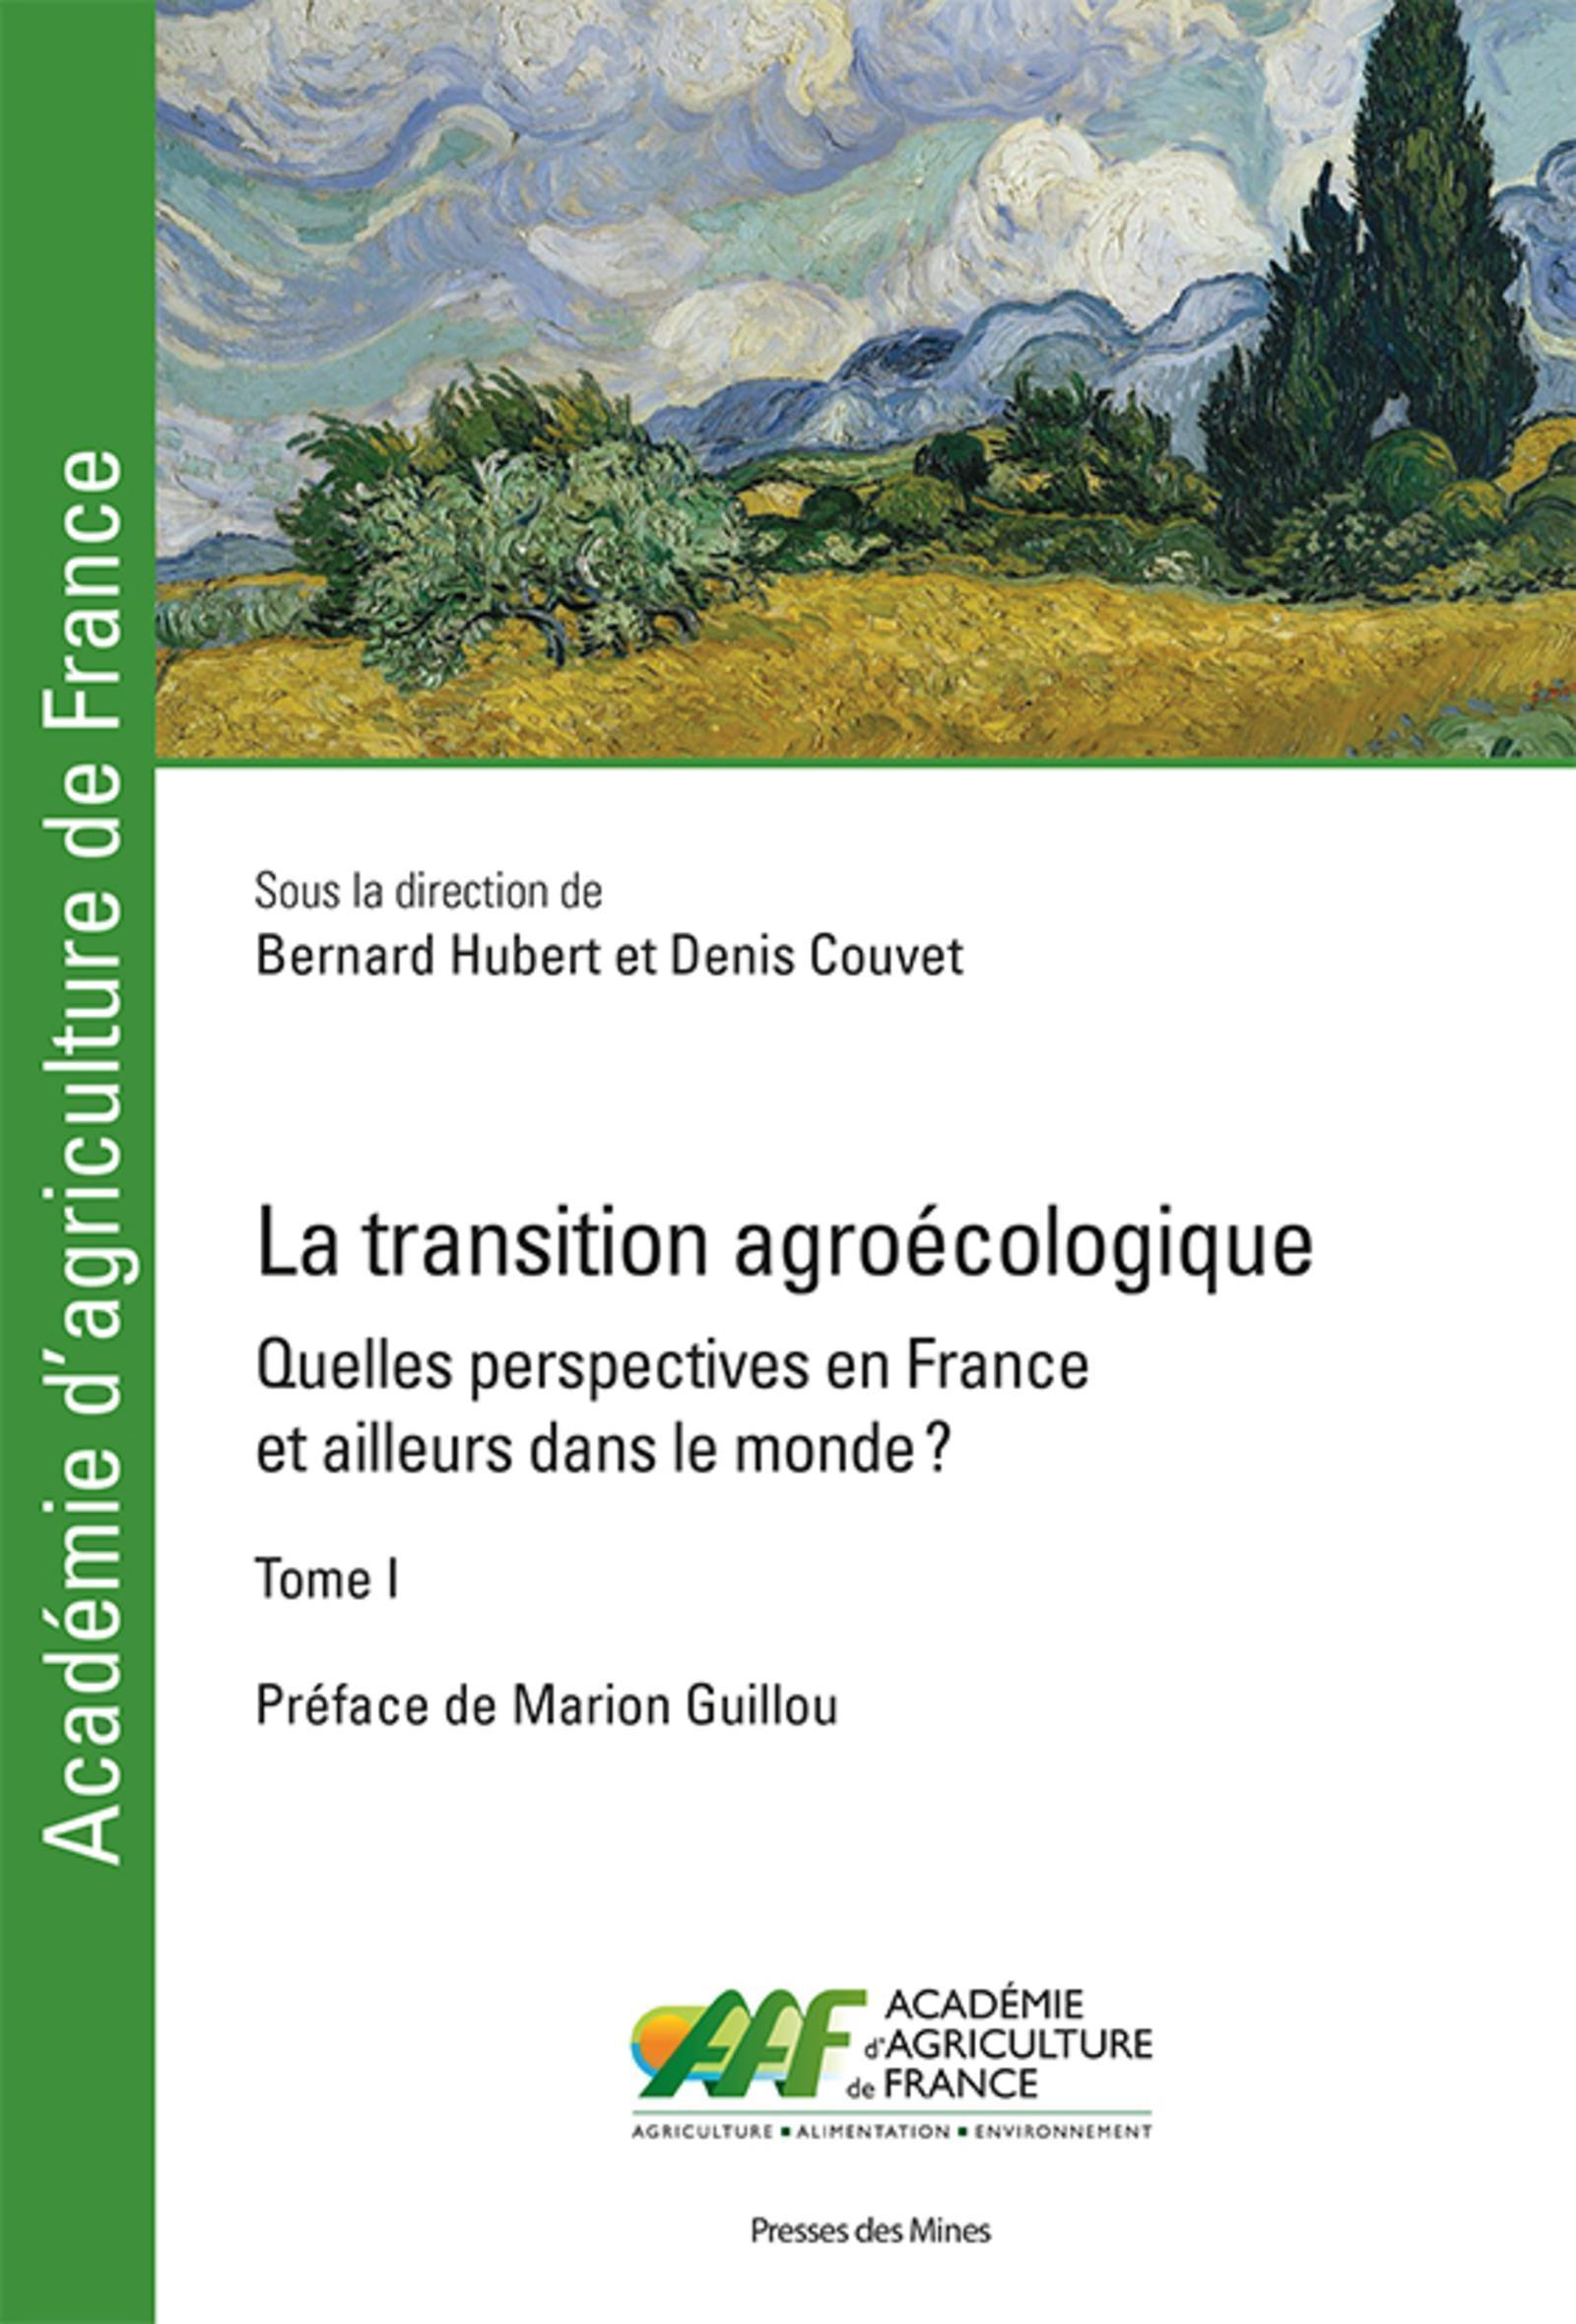 LA TRANSITION AGROECOLOGIQUE - QUELLES PERSPECTIVES EN FRANCE ?